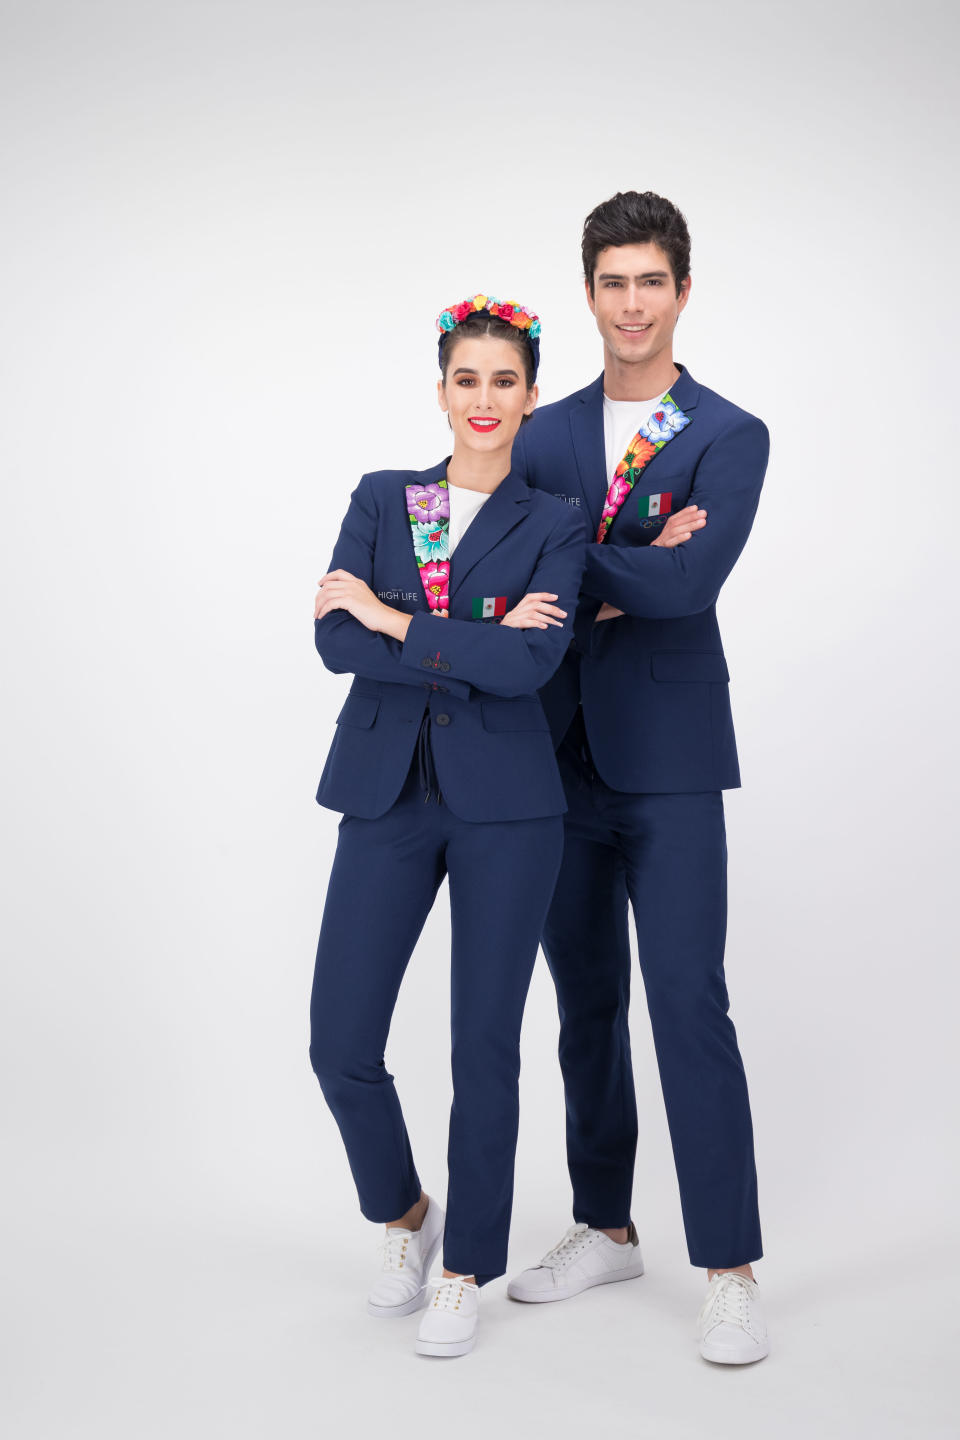 This image provided by High Life Mexico shows the opening ceremony outfits for team Mexico. The Mexico Olympic Committee held a national online competition to choose the looks from three designs done by High Life. The winning design honors Oaxaca in a single, brightly colored lapel. (High Life Mexico via AP)